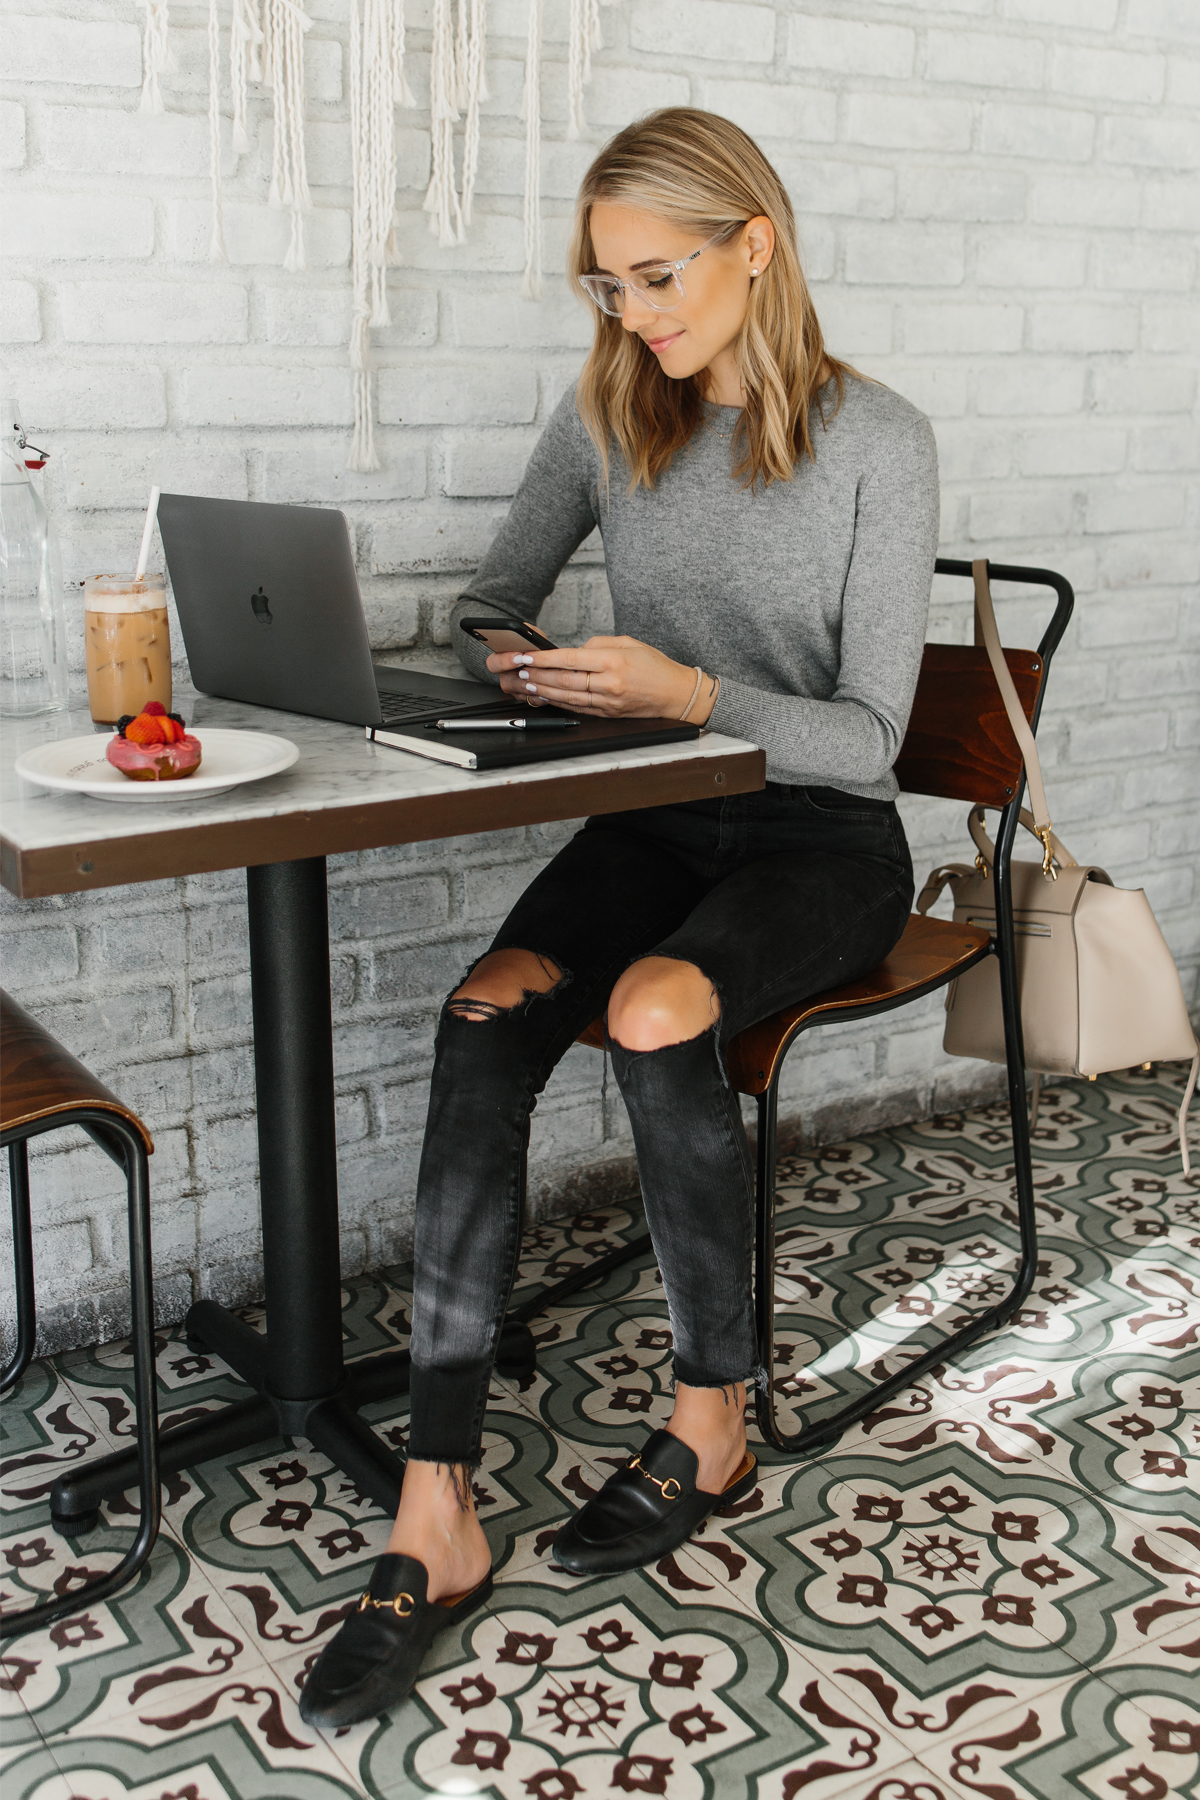 Corona Lockdown : Best fashion tips to follow while on work from home